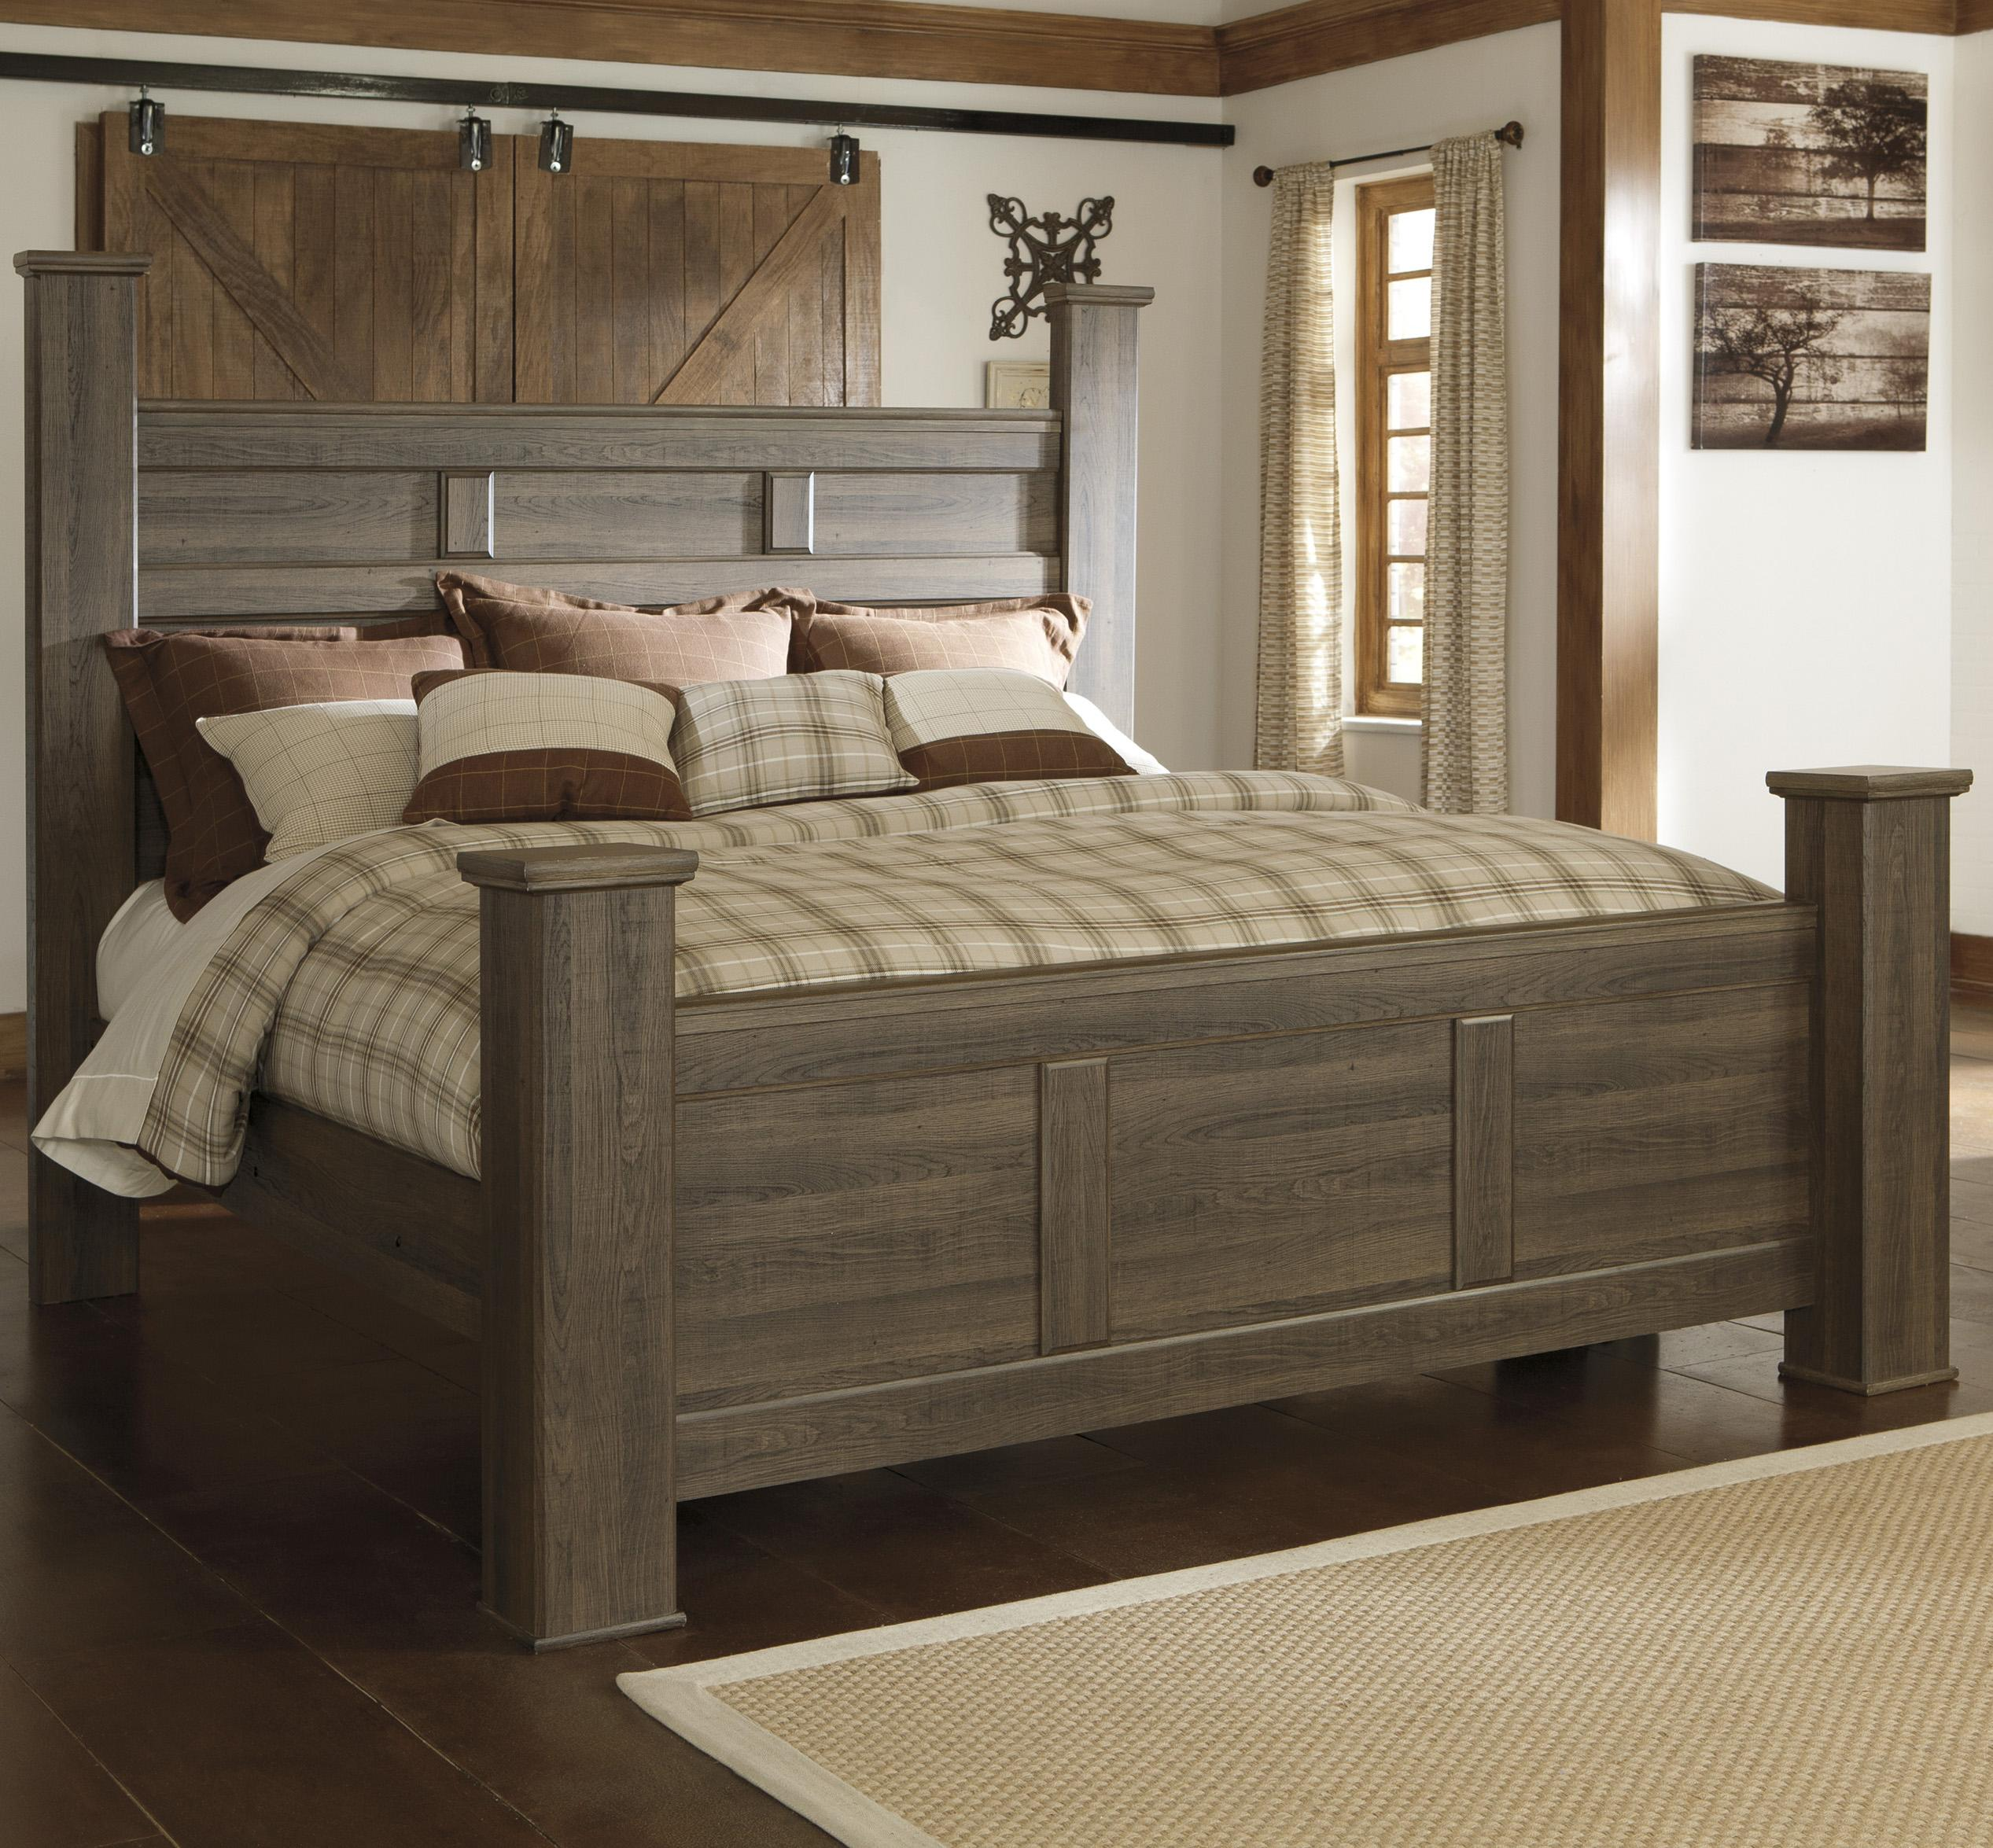 Signature Design By Ashley Juararo Transitional King Poster Bed Del Sol Furniture Poster Beds